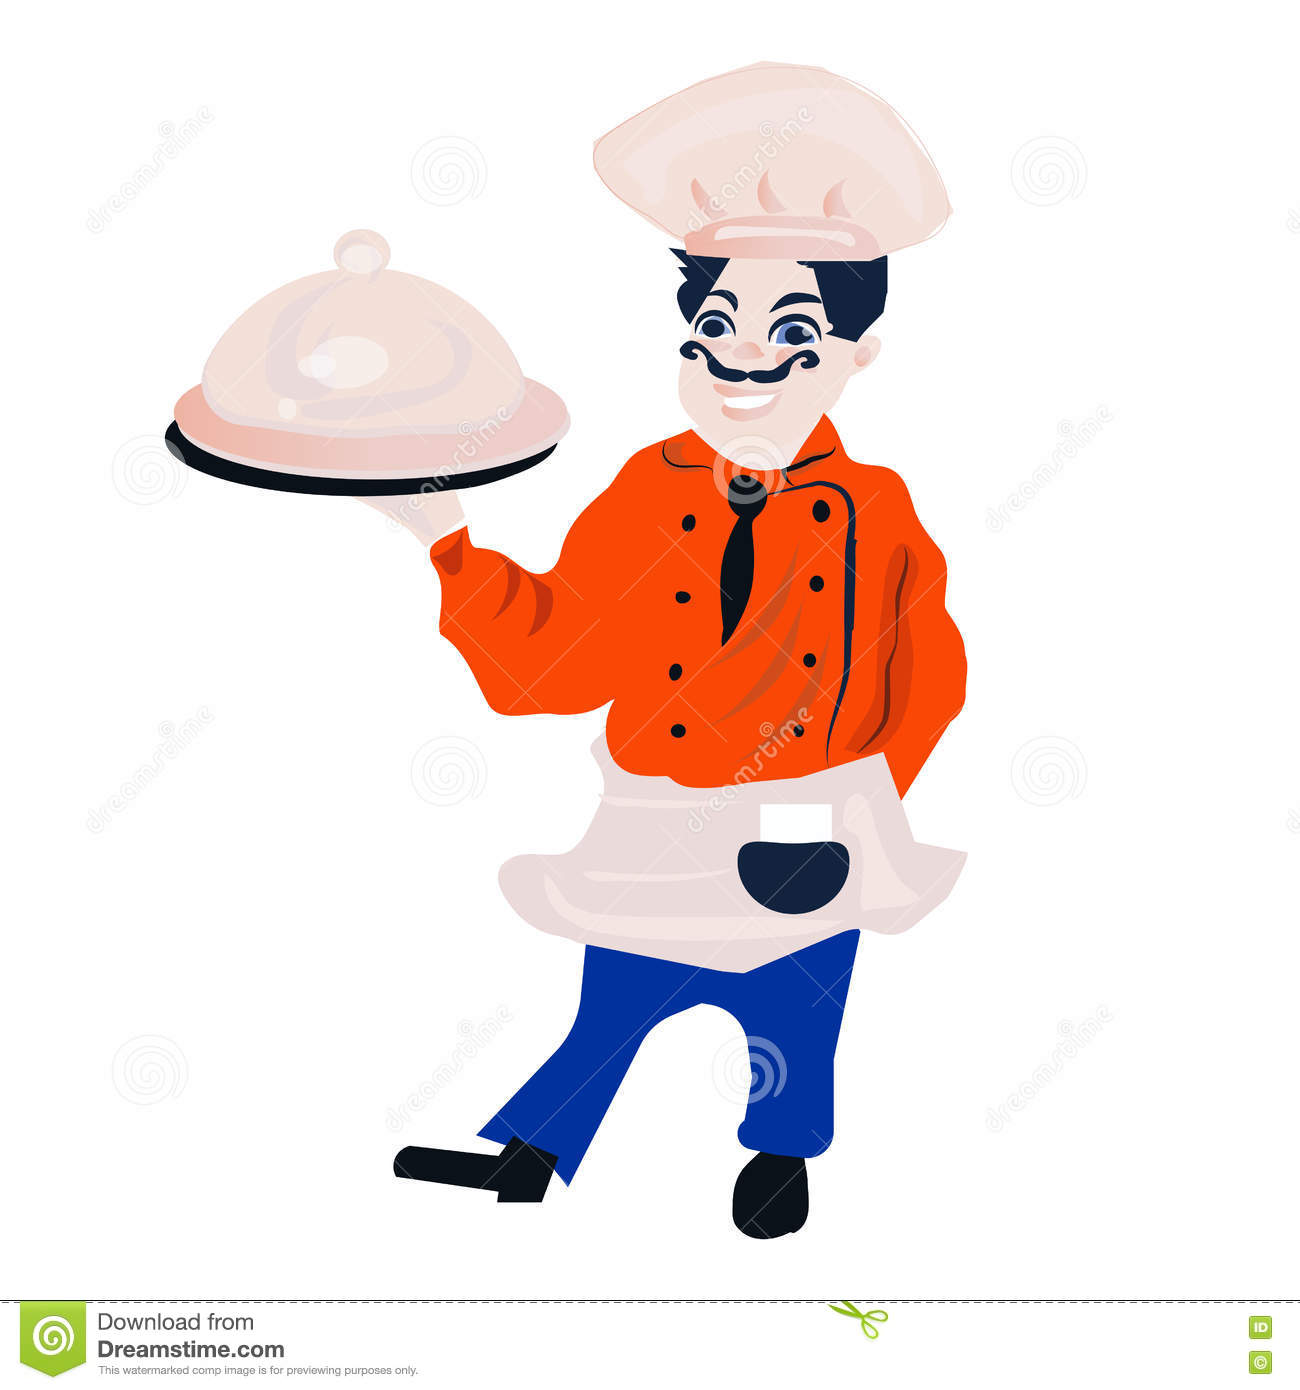 Funny Cartoon Restaurant Character, Merry Cook Icon, Isolated No.